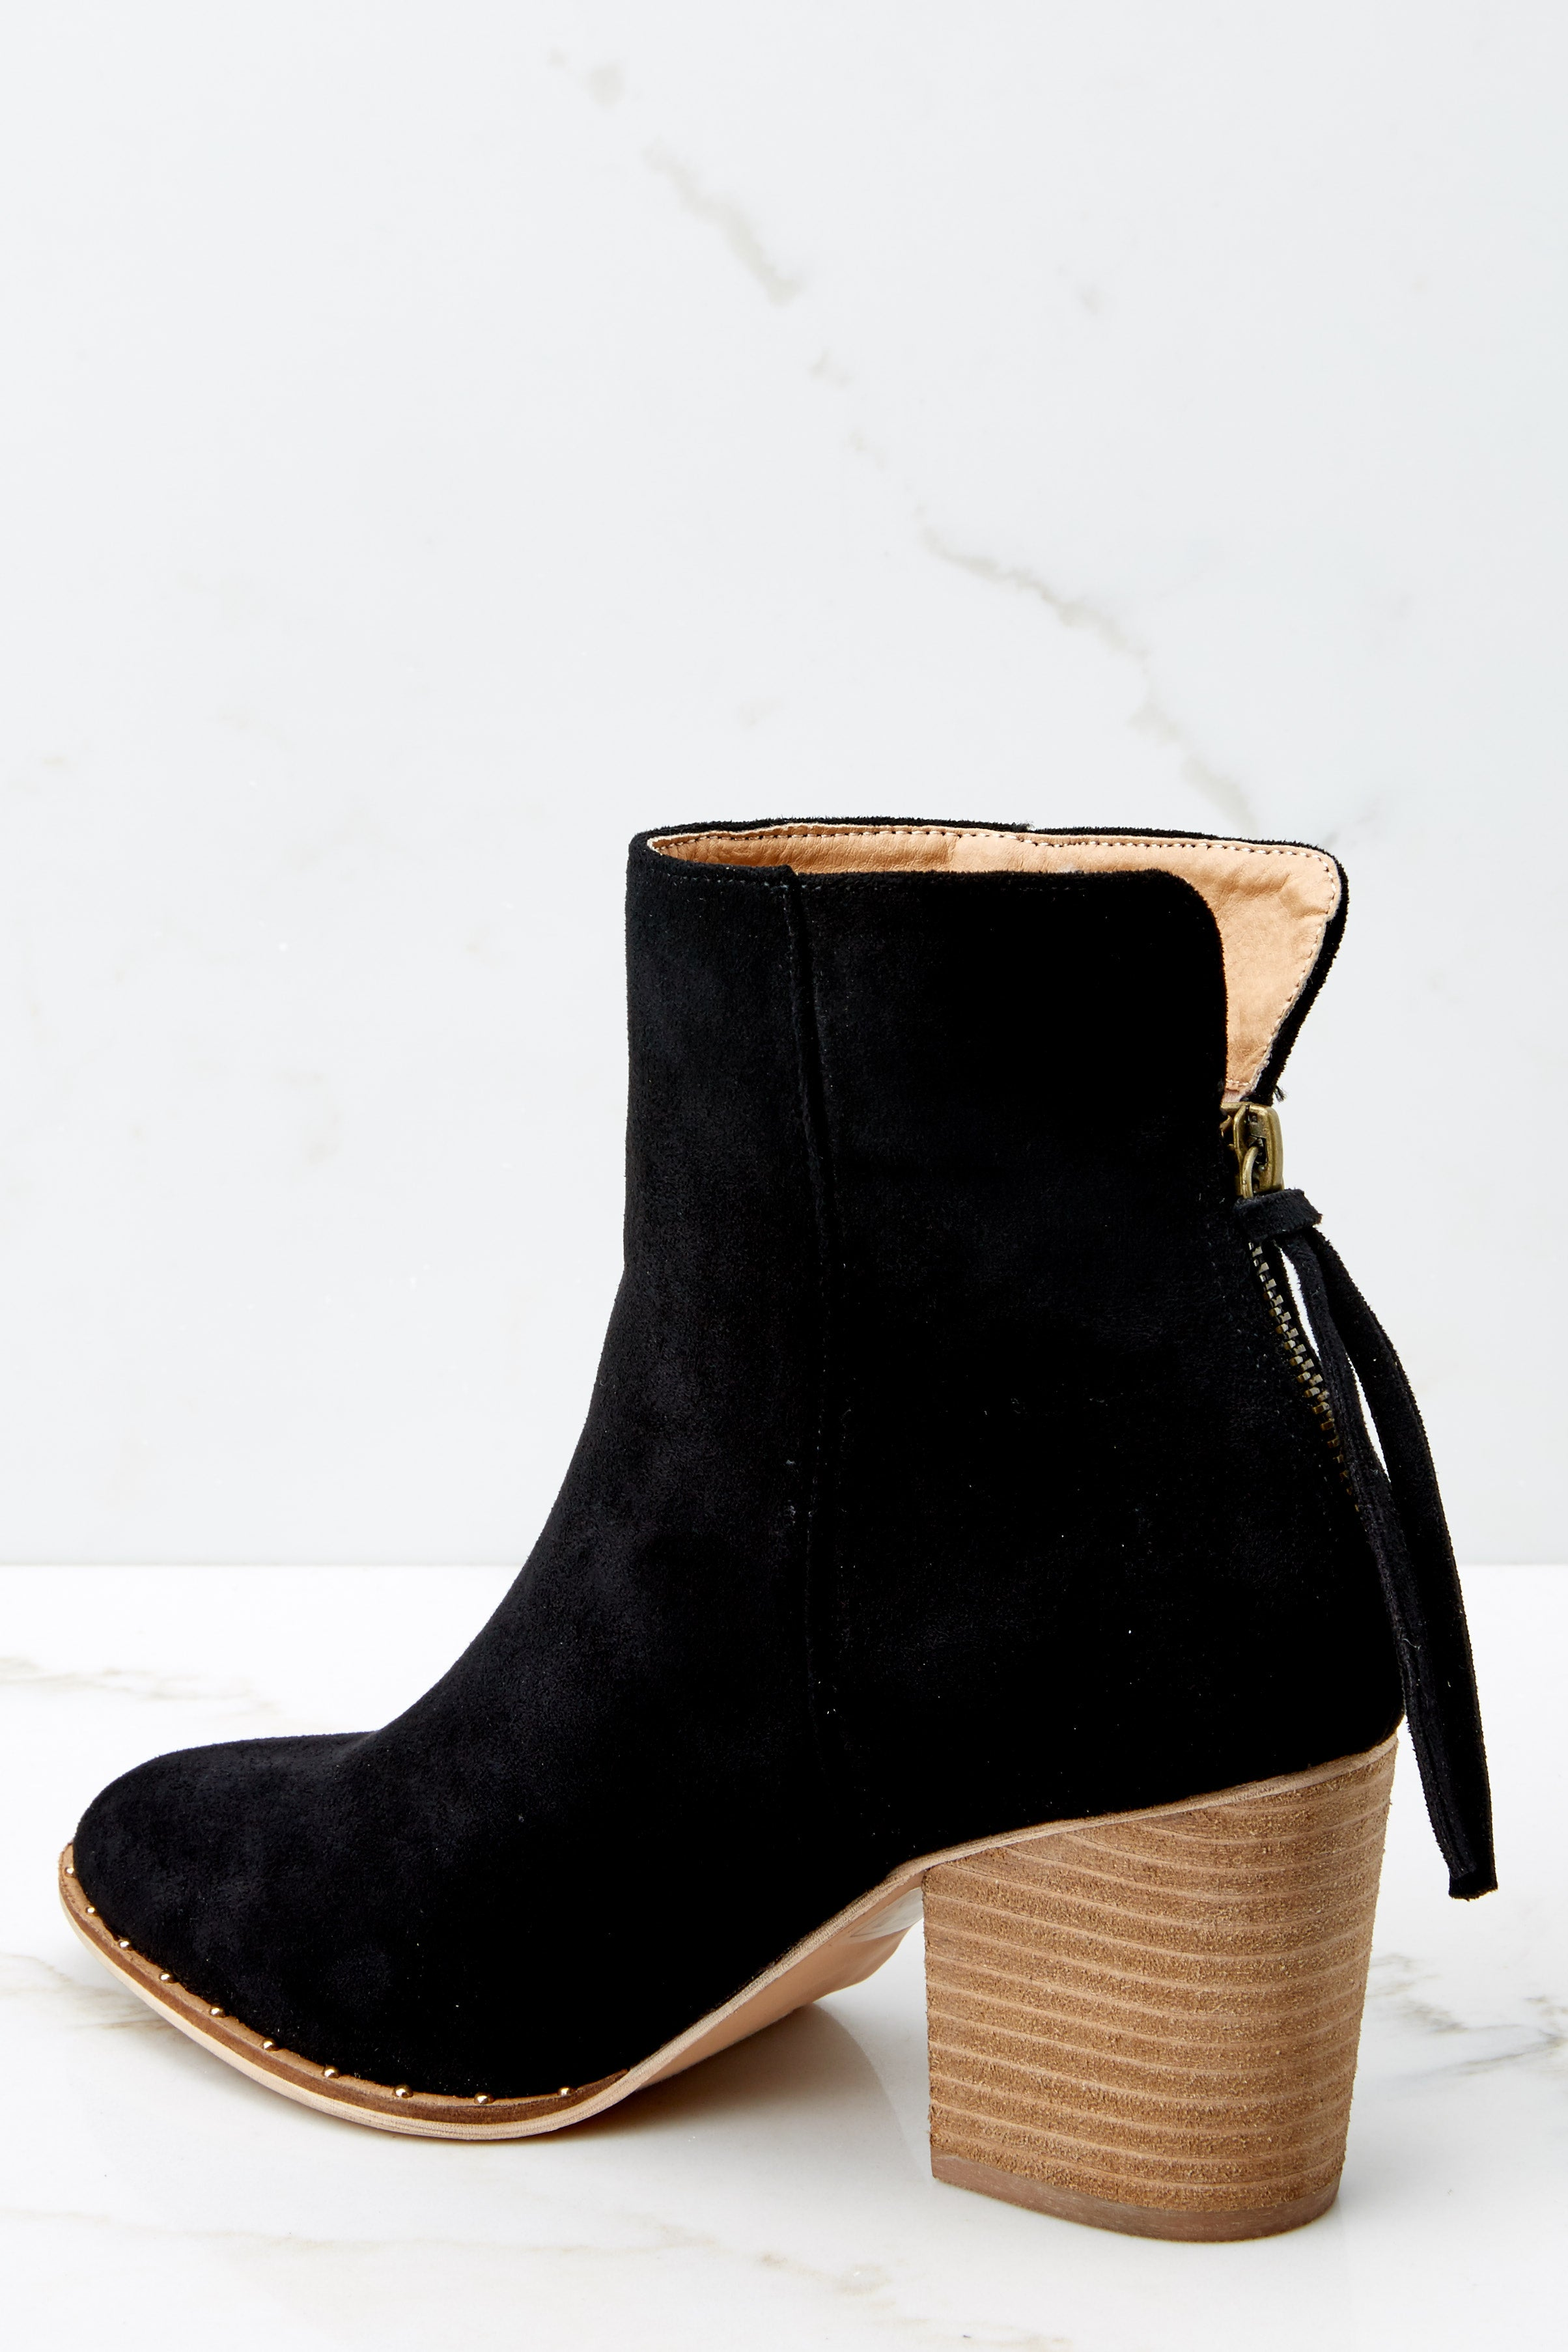 4 Taking These With Me Black Ankle Booties at reddress.com